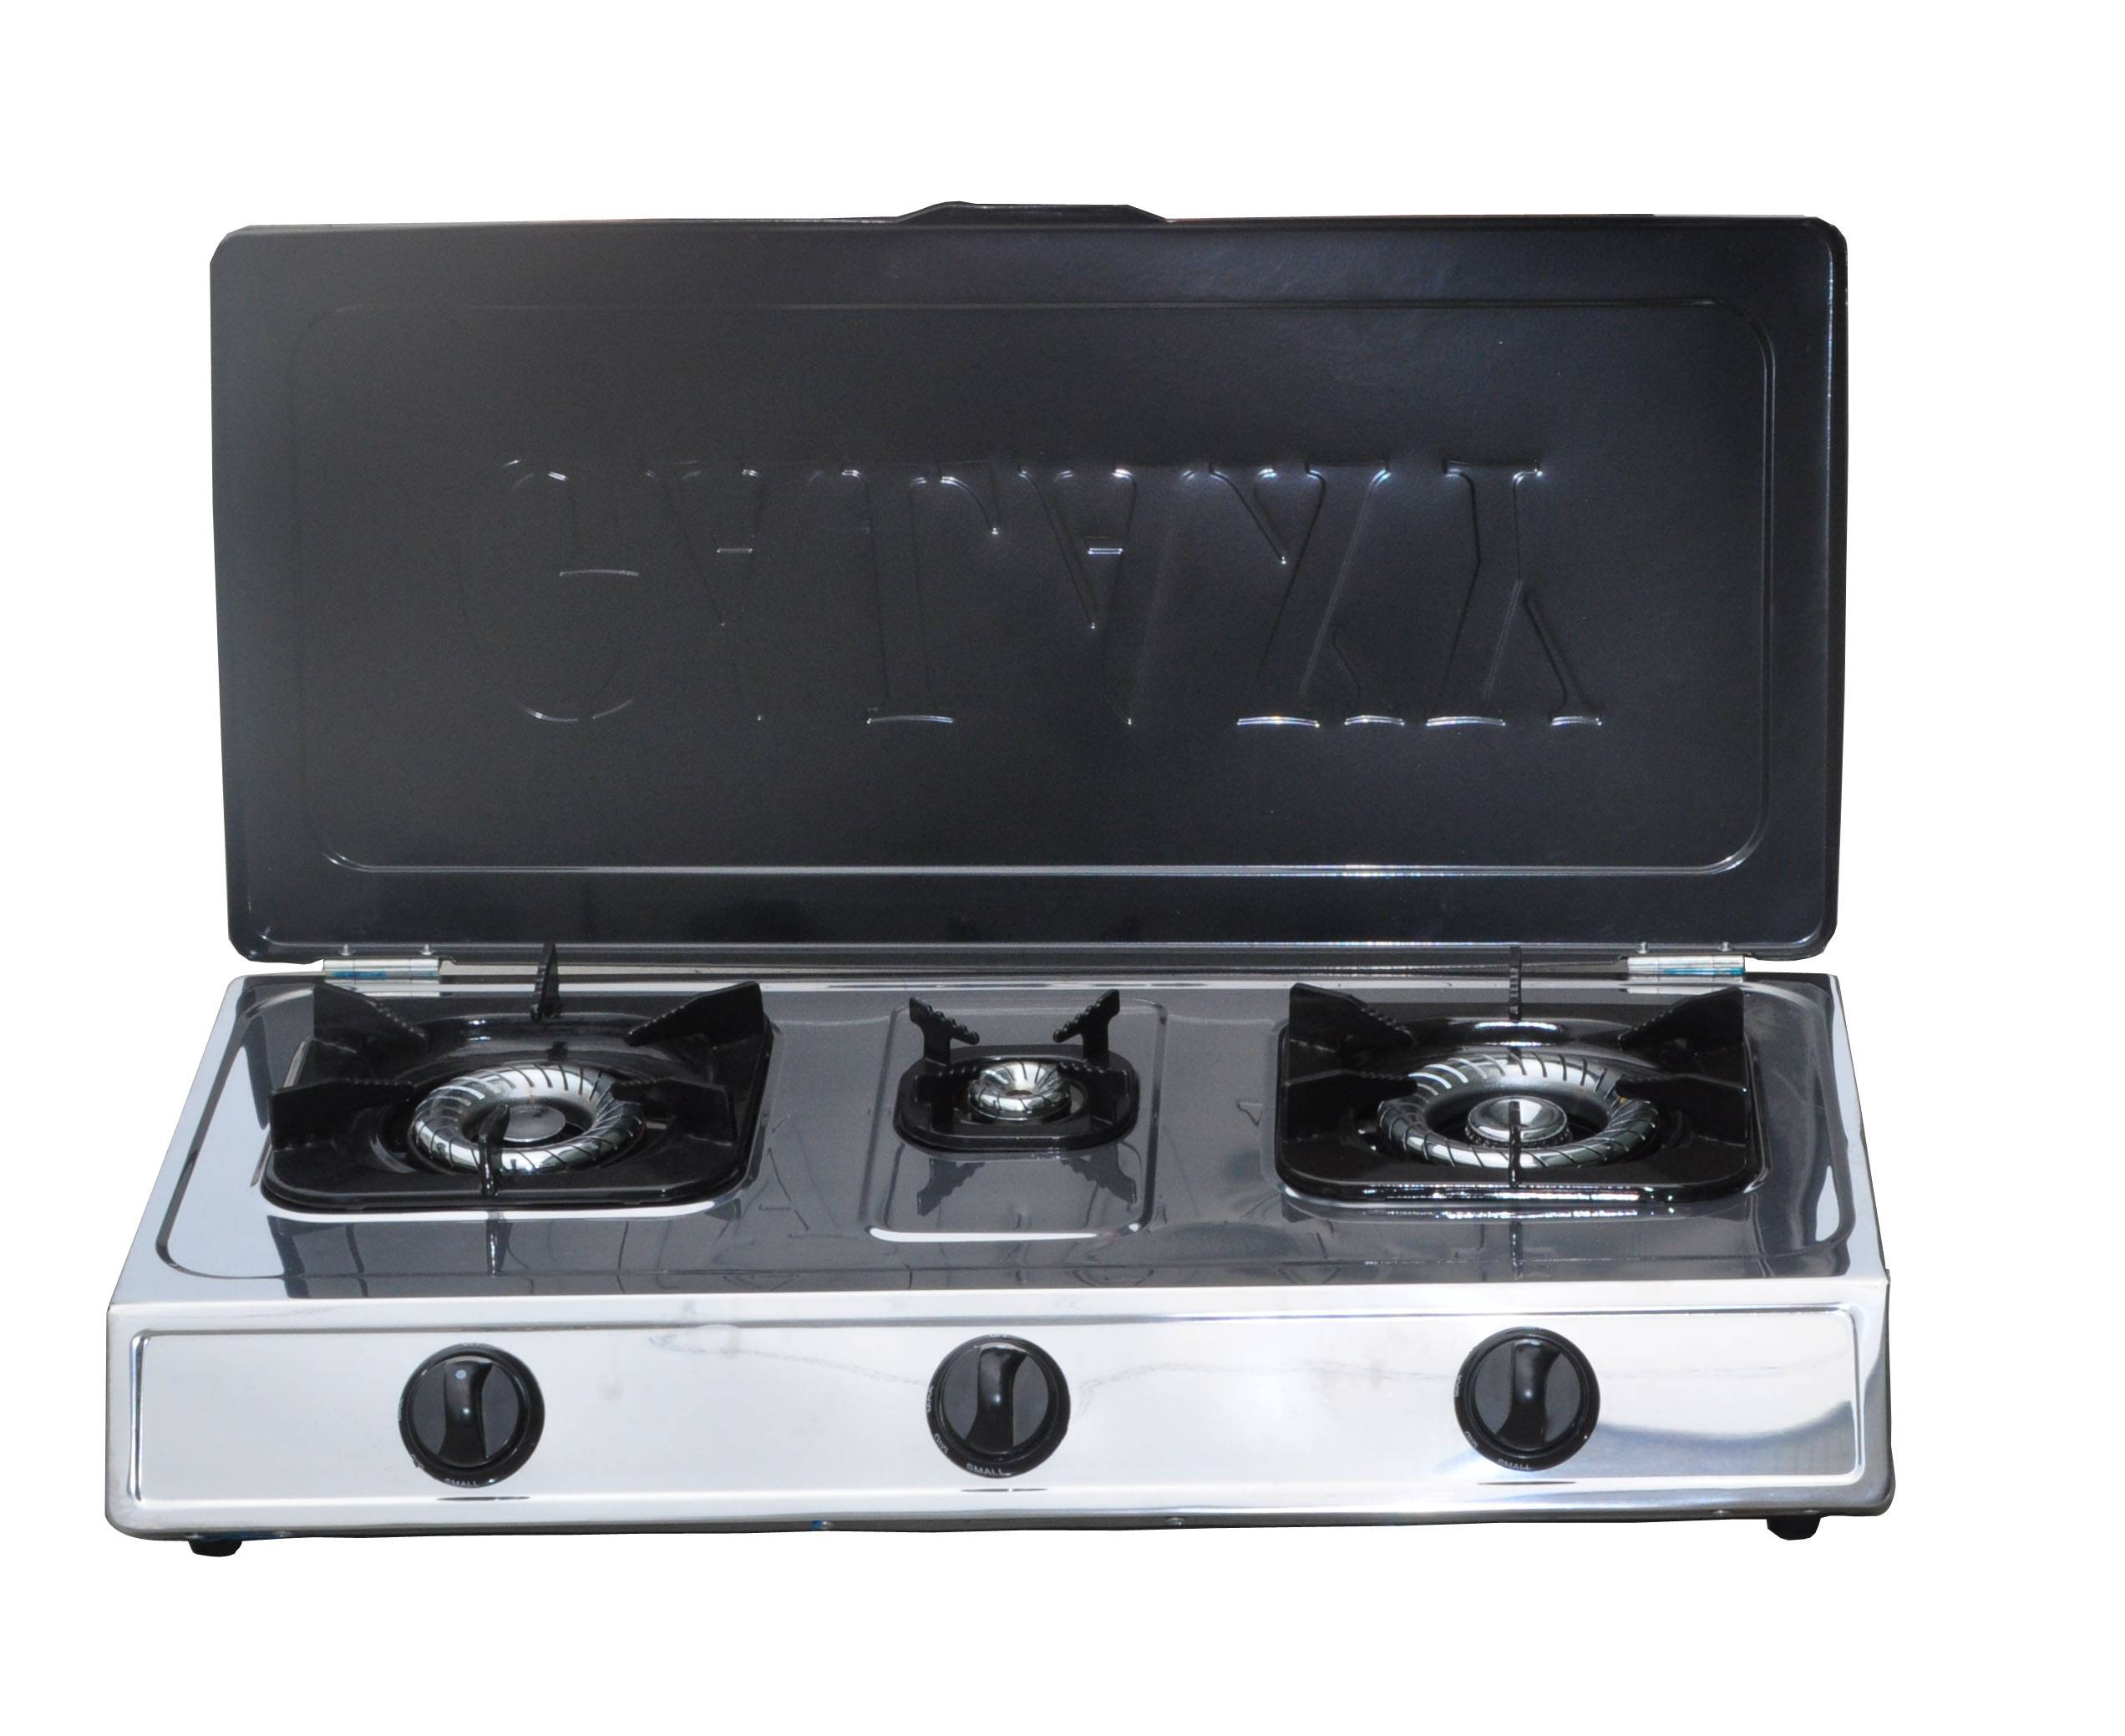 Stainless steel gas stove cooktop with cover